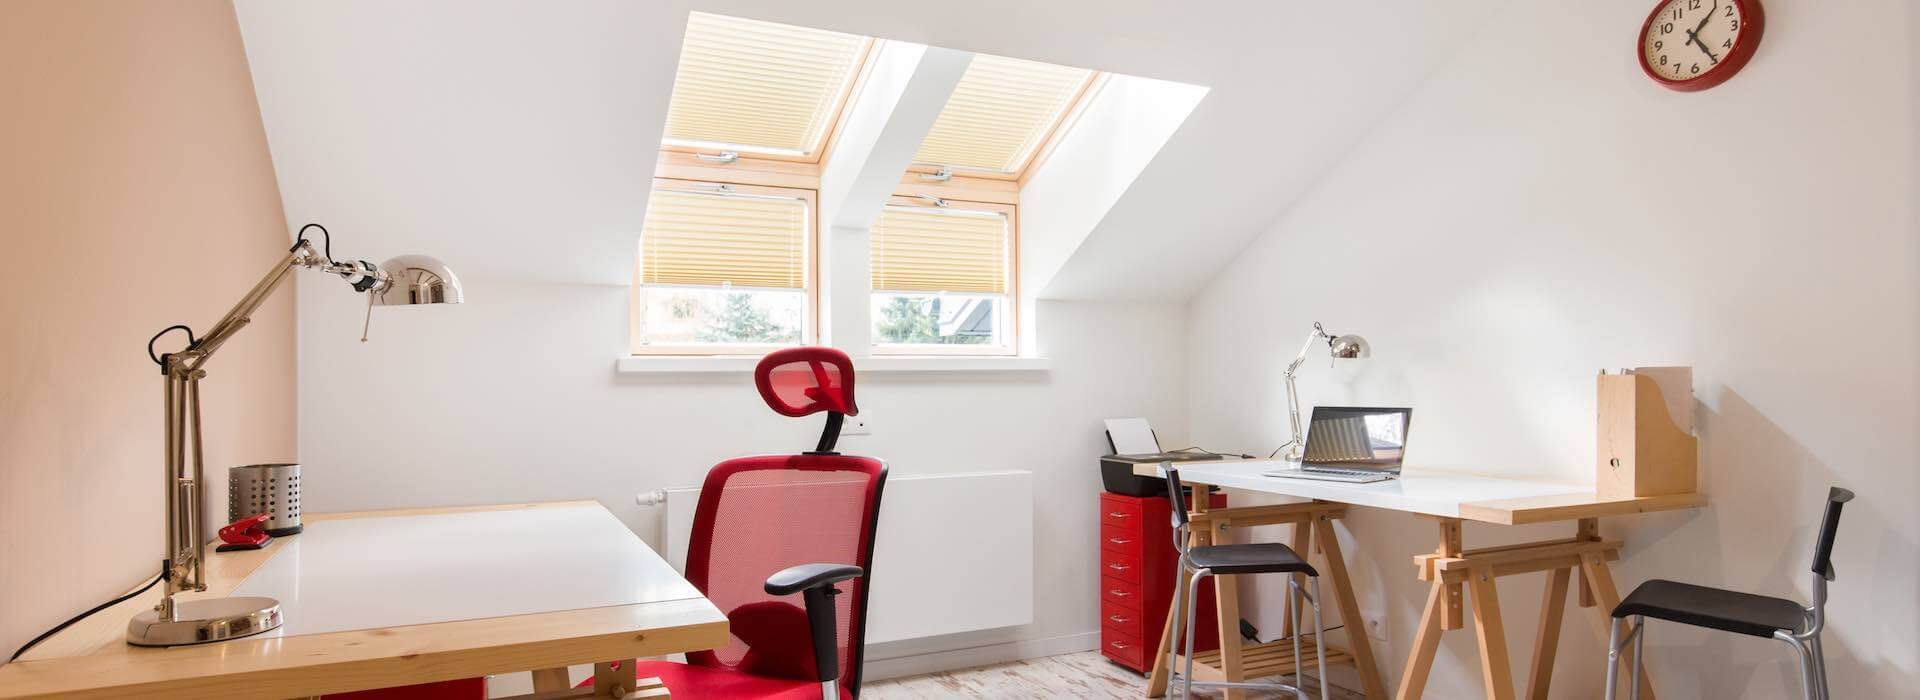 http://www.skybluelofts.co.uk/wp-content/uploads/2017/06/1920x700-sky-blue-lofts-wales-loft-conversion-cardiff-attic-modification-penarth-barry-lisvane-fairwater-ely-roath-canton-caerphilly-bridgend-south-wales-valleys-resized